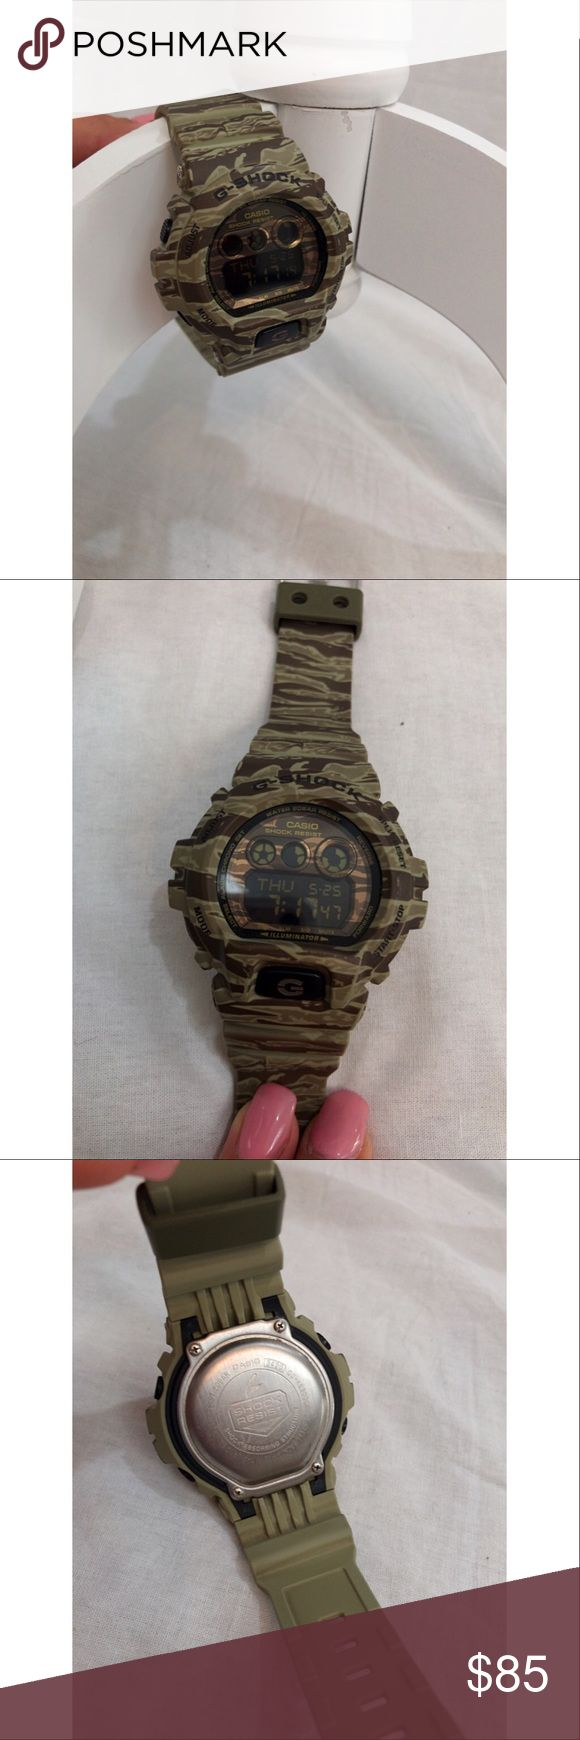 SALE.  G Shock Casio Men's Watch GDX-900CM G Shock Casio Men's Watch. Model # GDX-900CM. Color is Green Camo. This watch retails for $107 on amazon. Brand new watch, not used. Features- 3 multi functioning alarms, auto led backlight, world time, full auto calendar, 200 m water resistance, and a lot more. Please read through the specifications on the 7th photo. Adjustable wrist band closure, shock and water resistant. Steel caseback G-Shock Accessories Watches